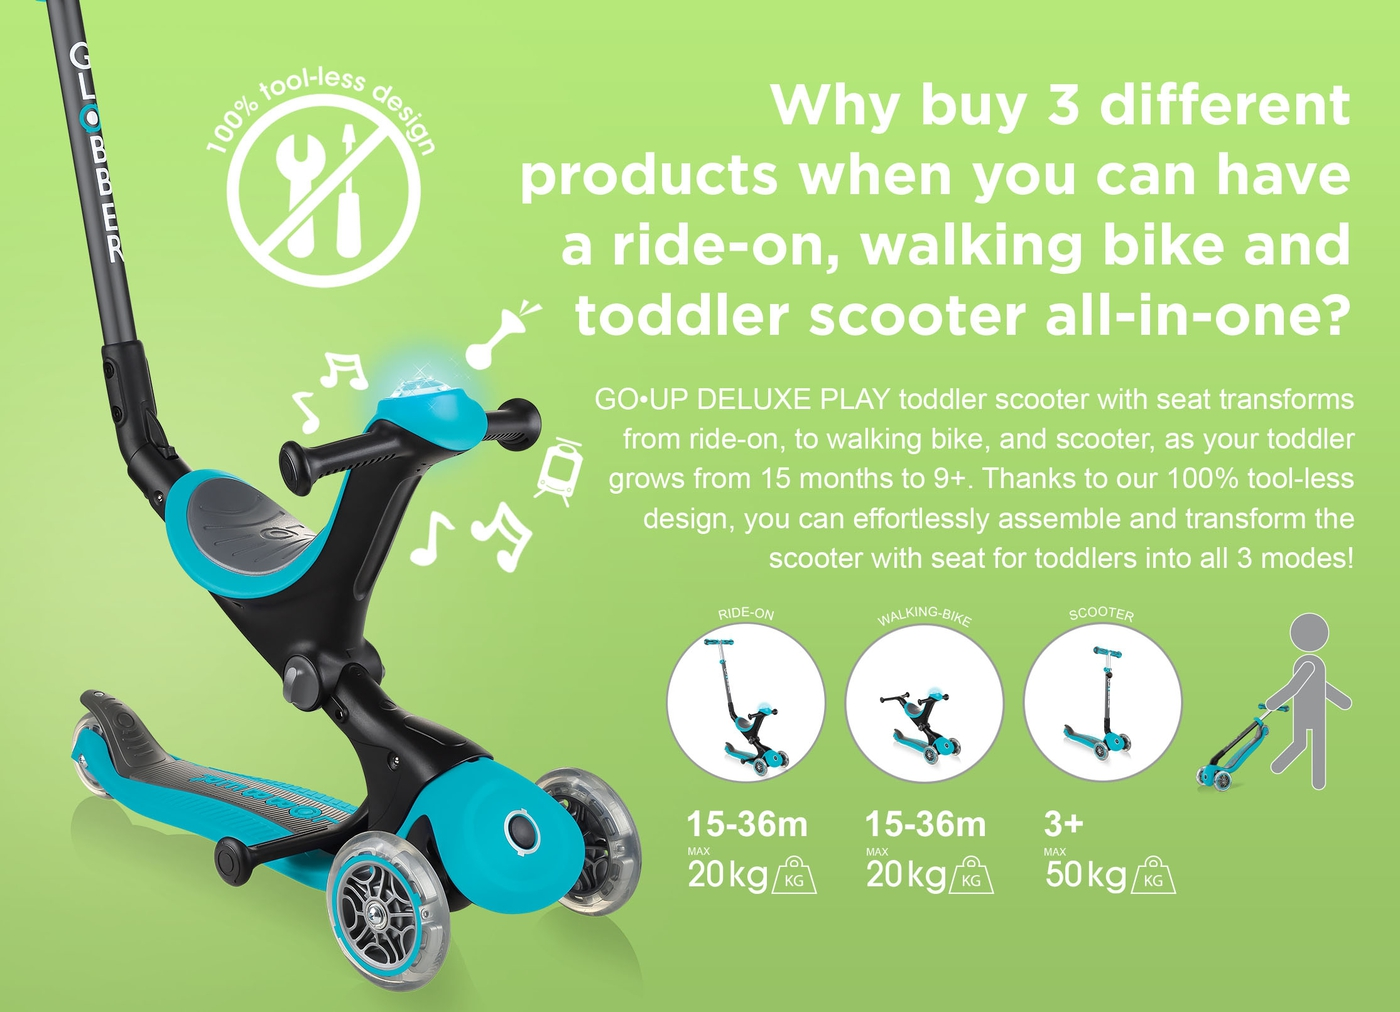 Why buy 3 different products when you can have a ride-on, walking bike and toddler scooter all-in-one? GO•UP DELUXE PLAY toddler scooter with seat transforms from ride-on, to walking bike, and scooter, as your toddler grows from 15 months to 9+. Thanks to our 100% tool-less design, you can effortlessly assemble and transform the scooter with seat for toddlers into all 3 modes!